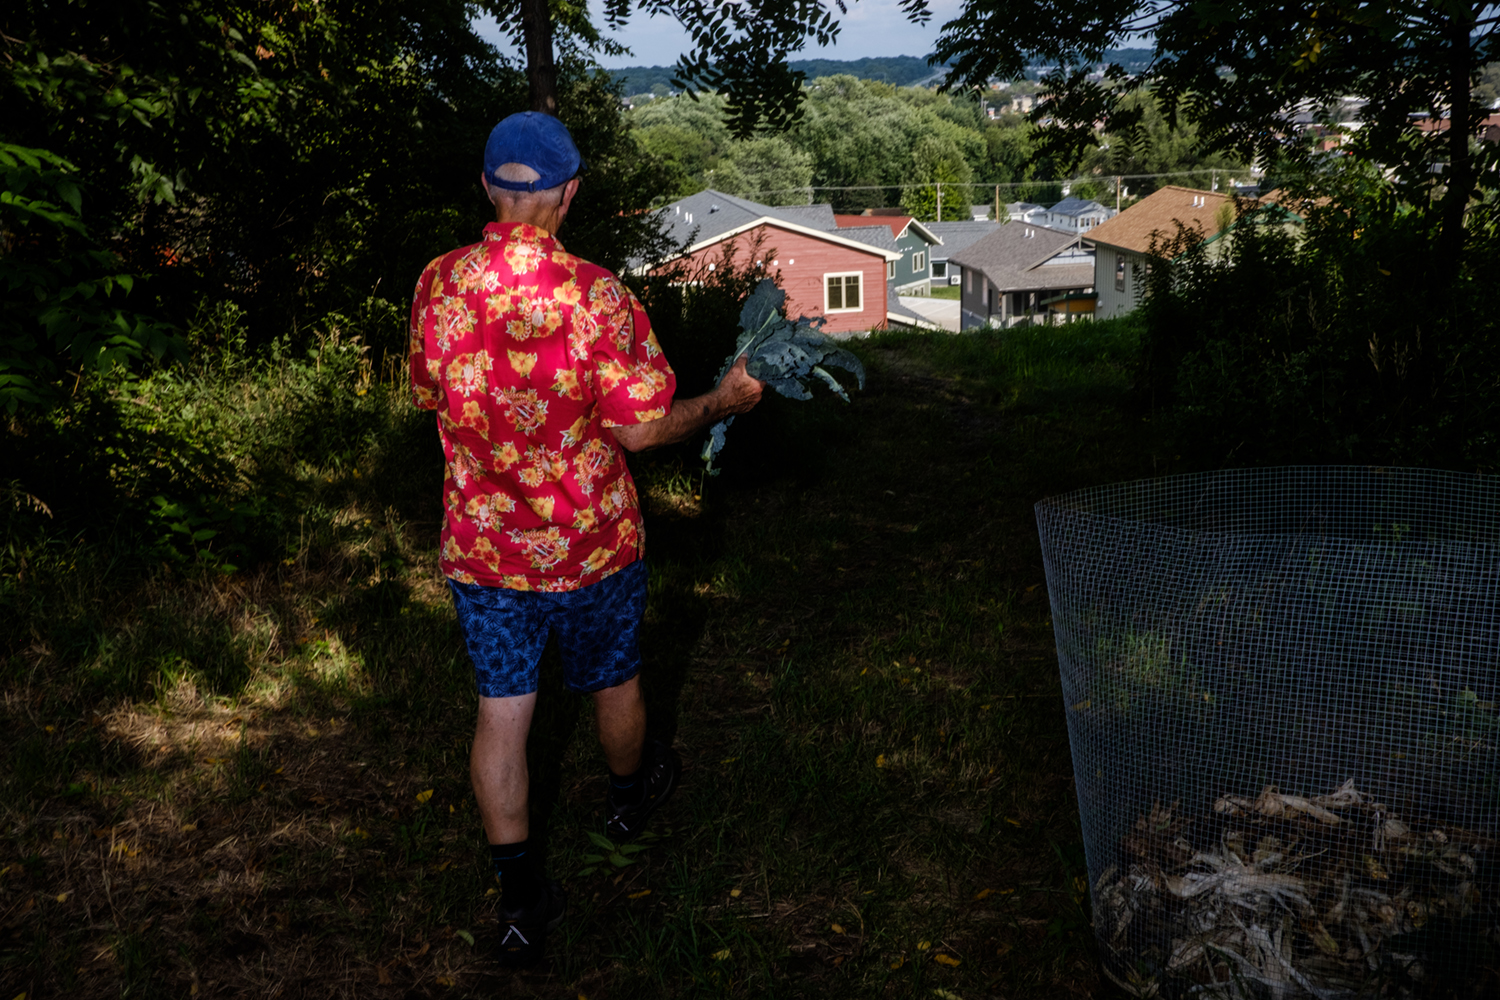 John Bowman leaves the community garden with some kale and a tomato at the Prairie Hill Co-Housing community in Iowa City on Thursday, August 16, 2018. John and his wife Valerie moved to Prairie Hill because they felt that cohousing offered a good balance between community and privacy. The community is based on the Danish coousing Model and includes private residences as well as spaces common to all residents, such as a communal garden. (Nick Rohlman/The Daily Iowan)